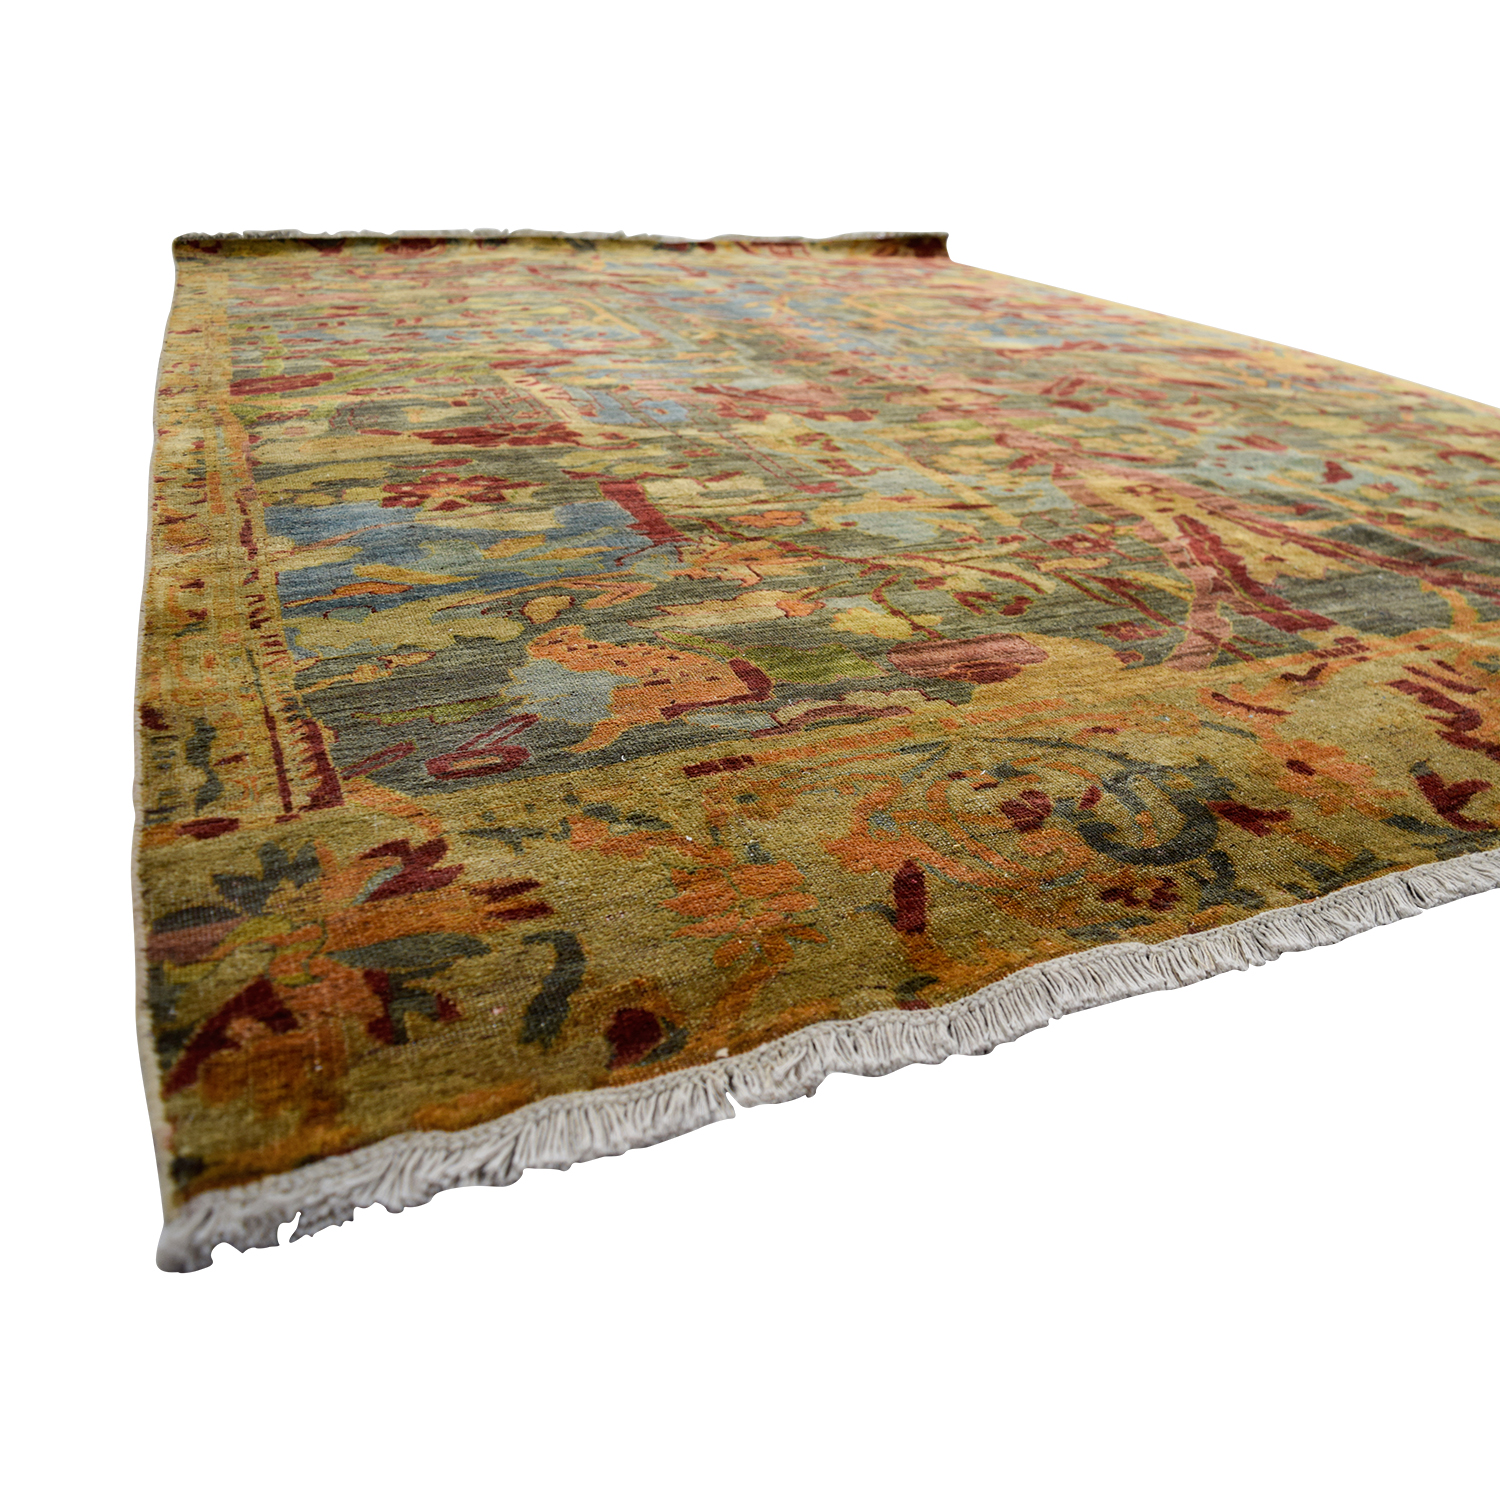 buy Obeetee Obeetee Hand Knotted Red and Green Floral Wool Rug online